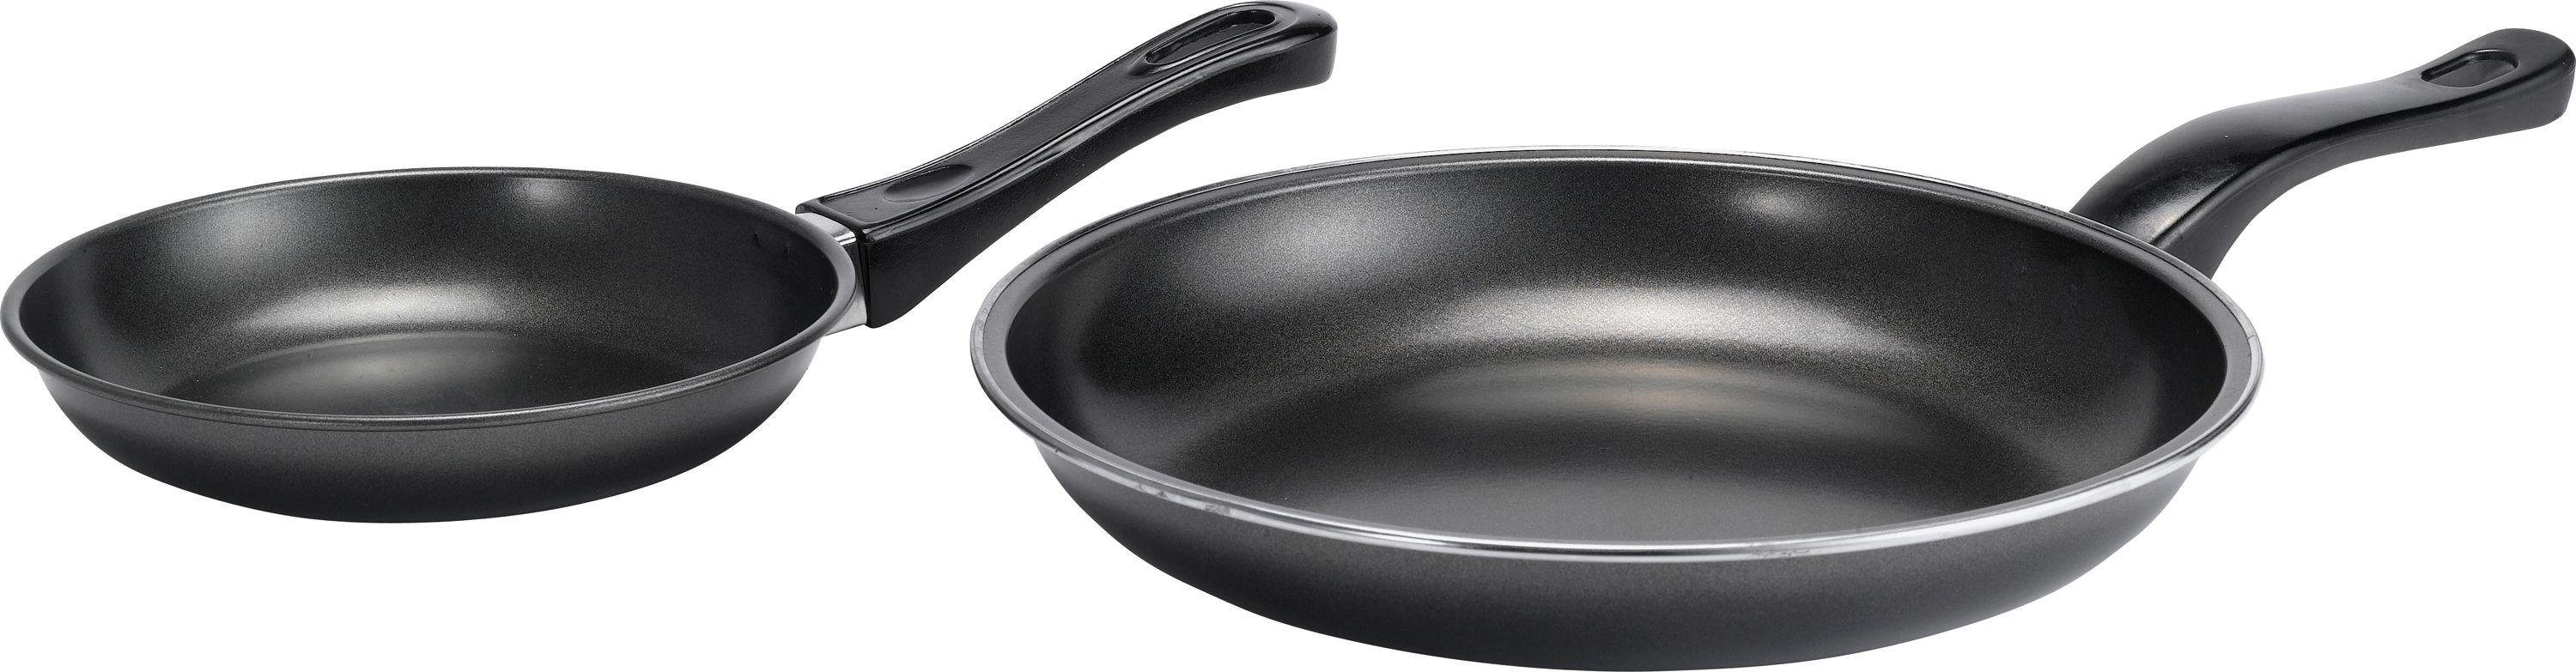 simple-value-2-piece-frying-pan-set